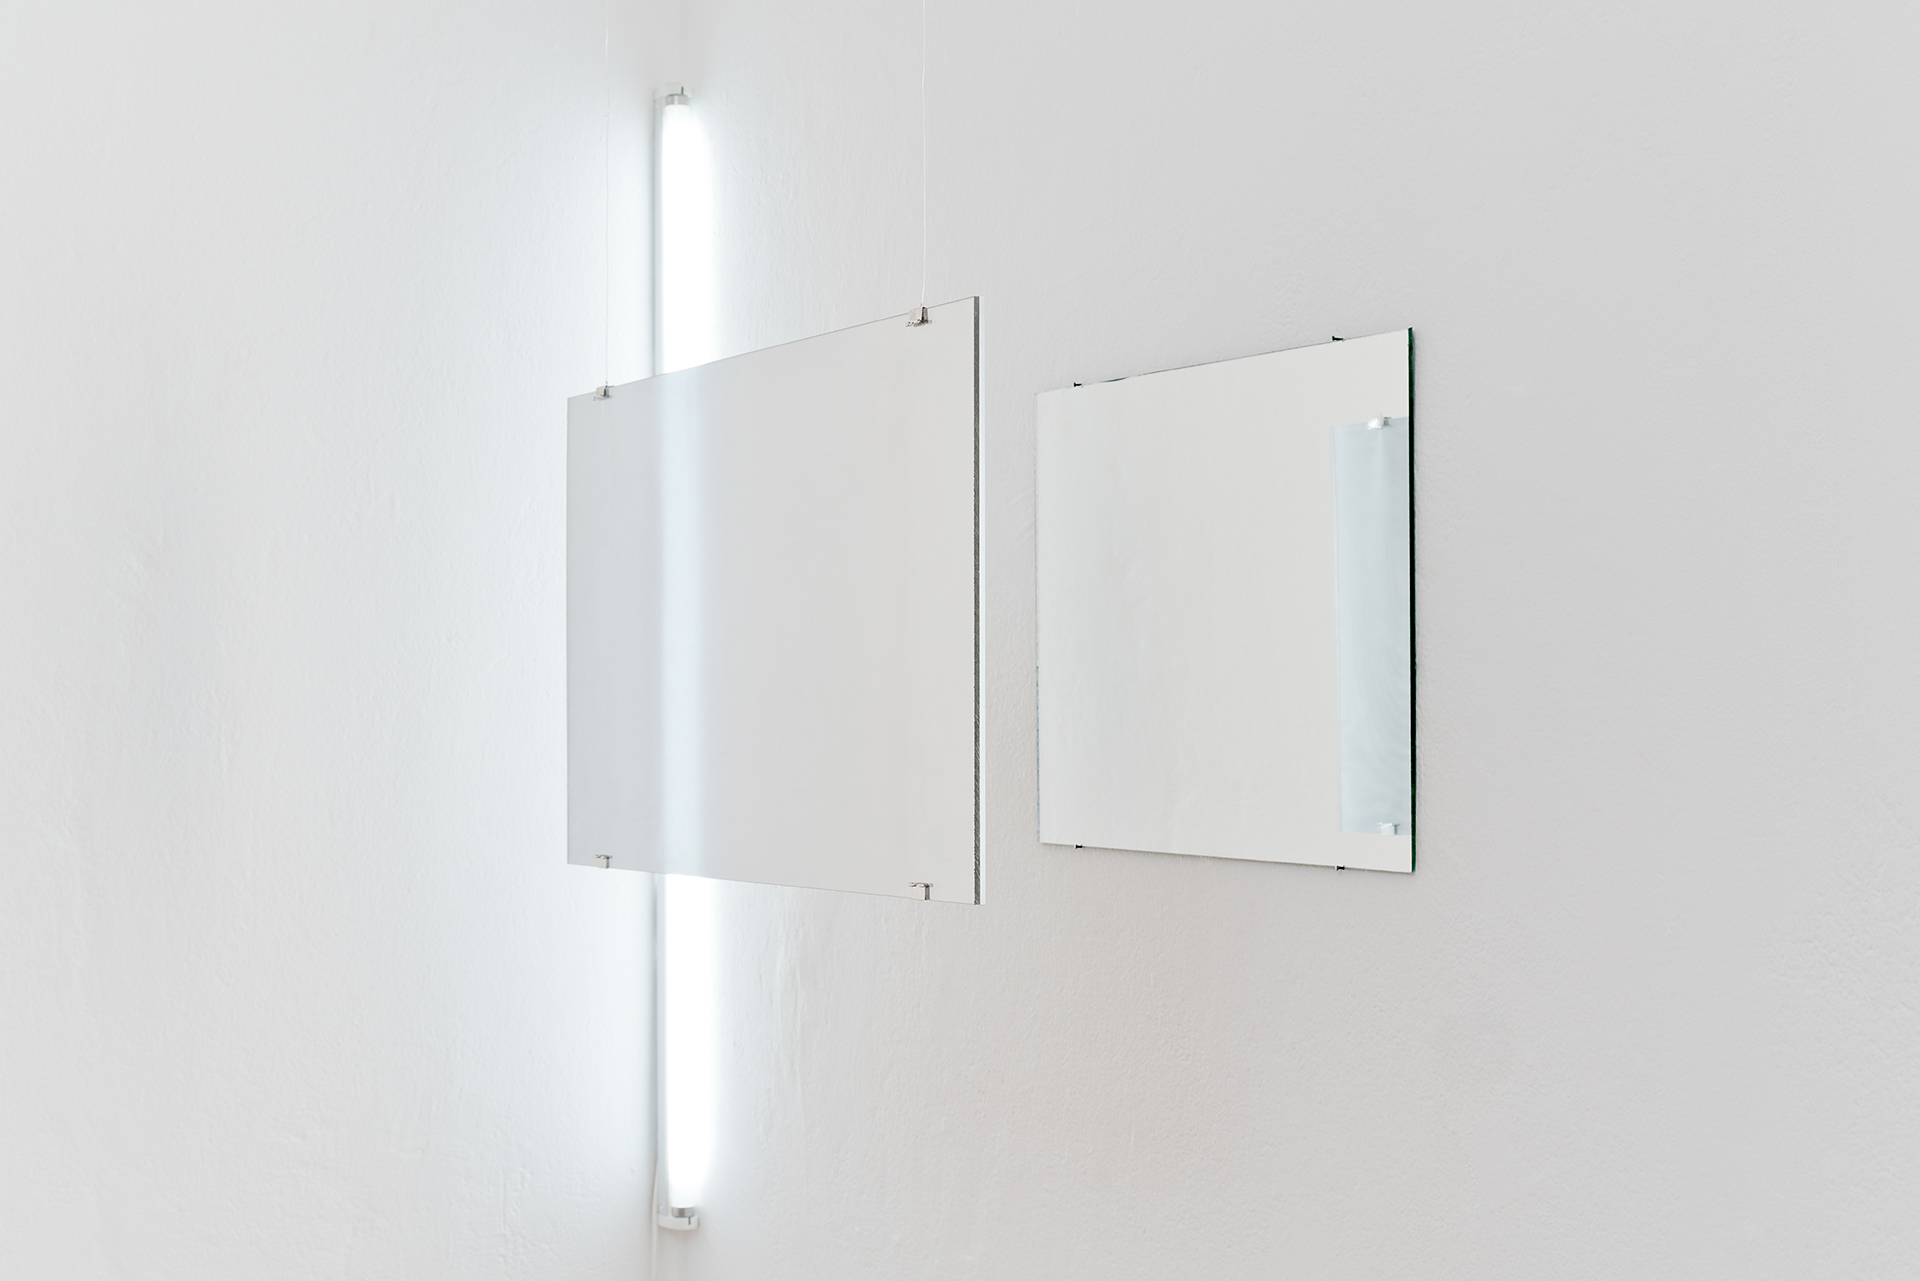 MIRRORED WALL AFTER BRUNELLESCHI (NACRE), 2018